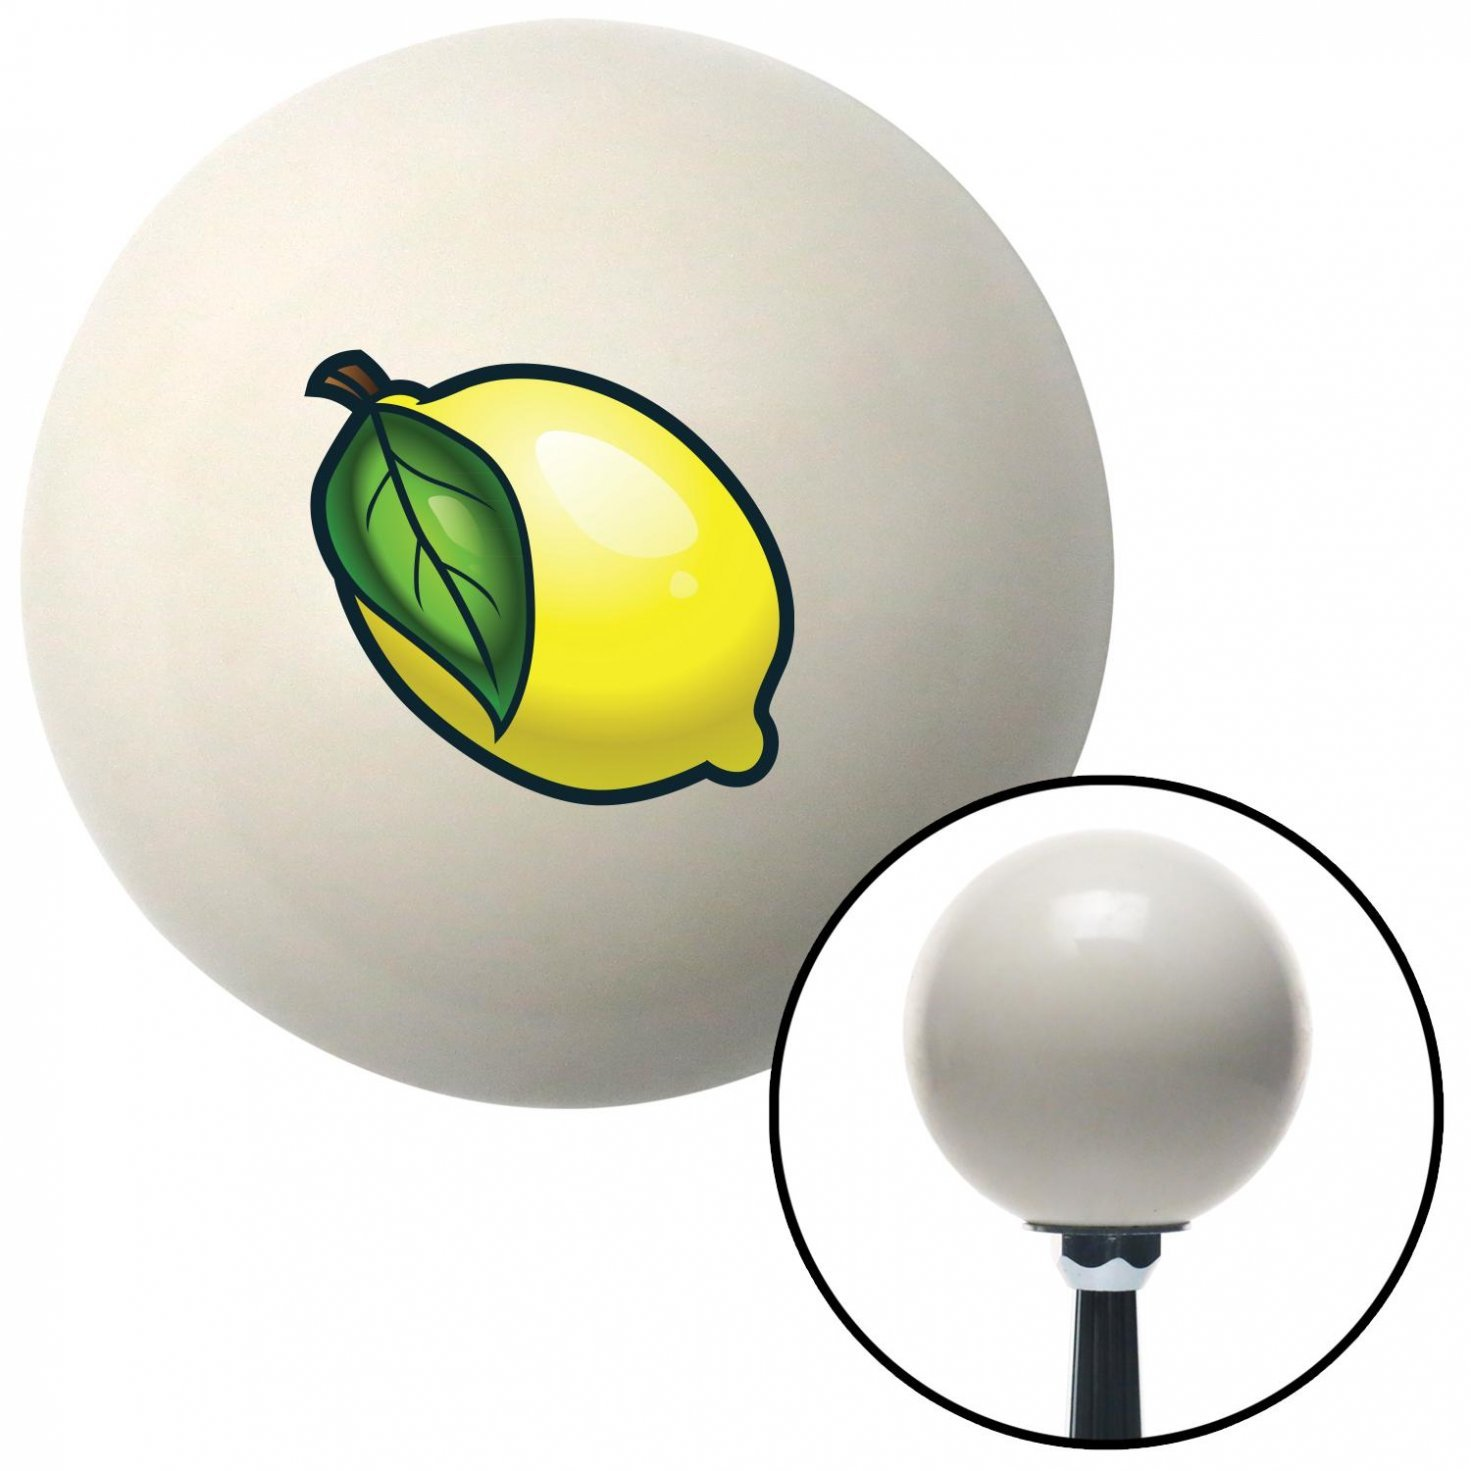 American Shifter 42414 Ivory Shift Knob with 16mm x 1.5 Insert Lemon